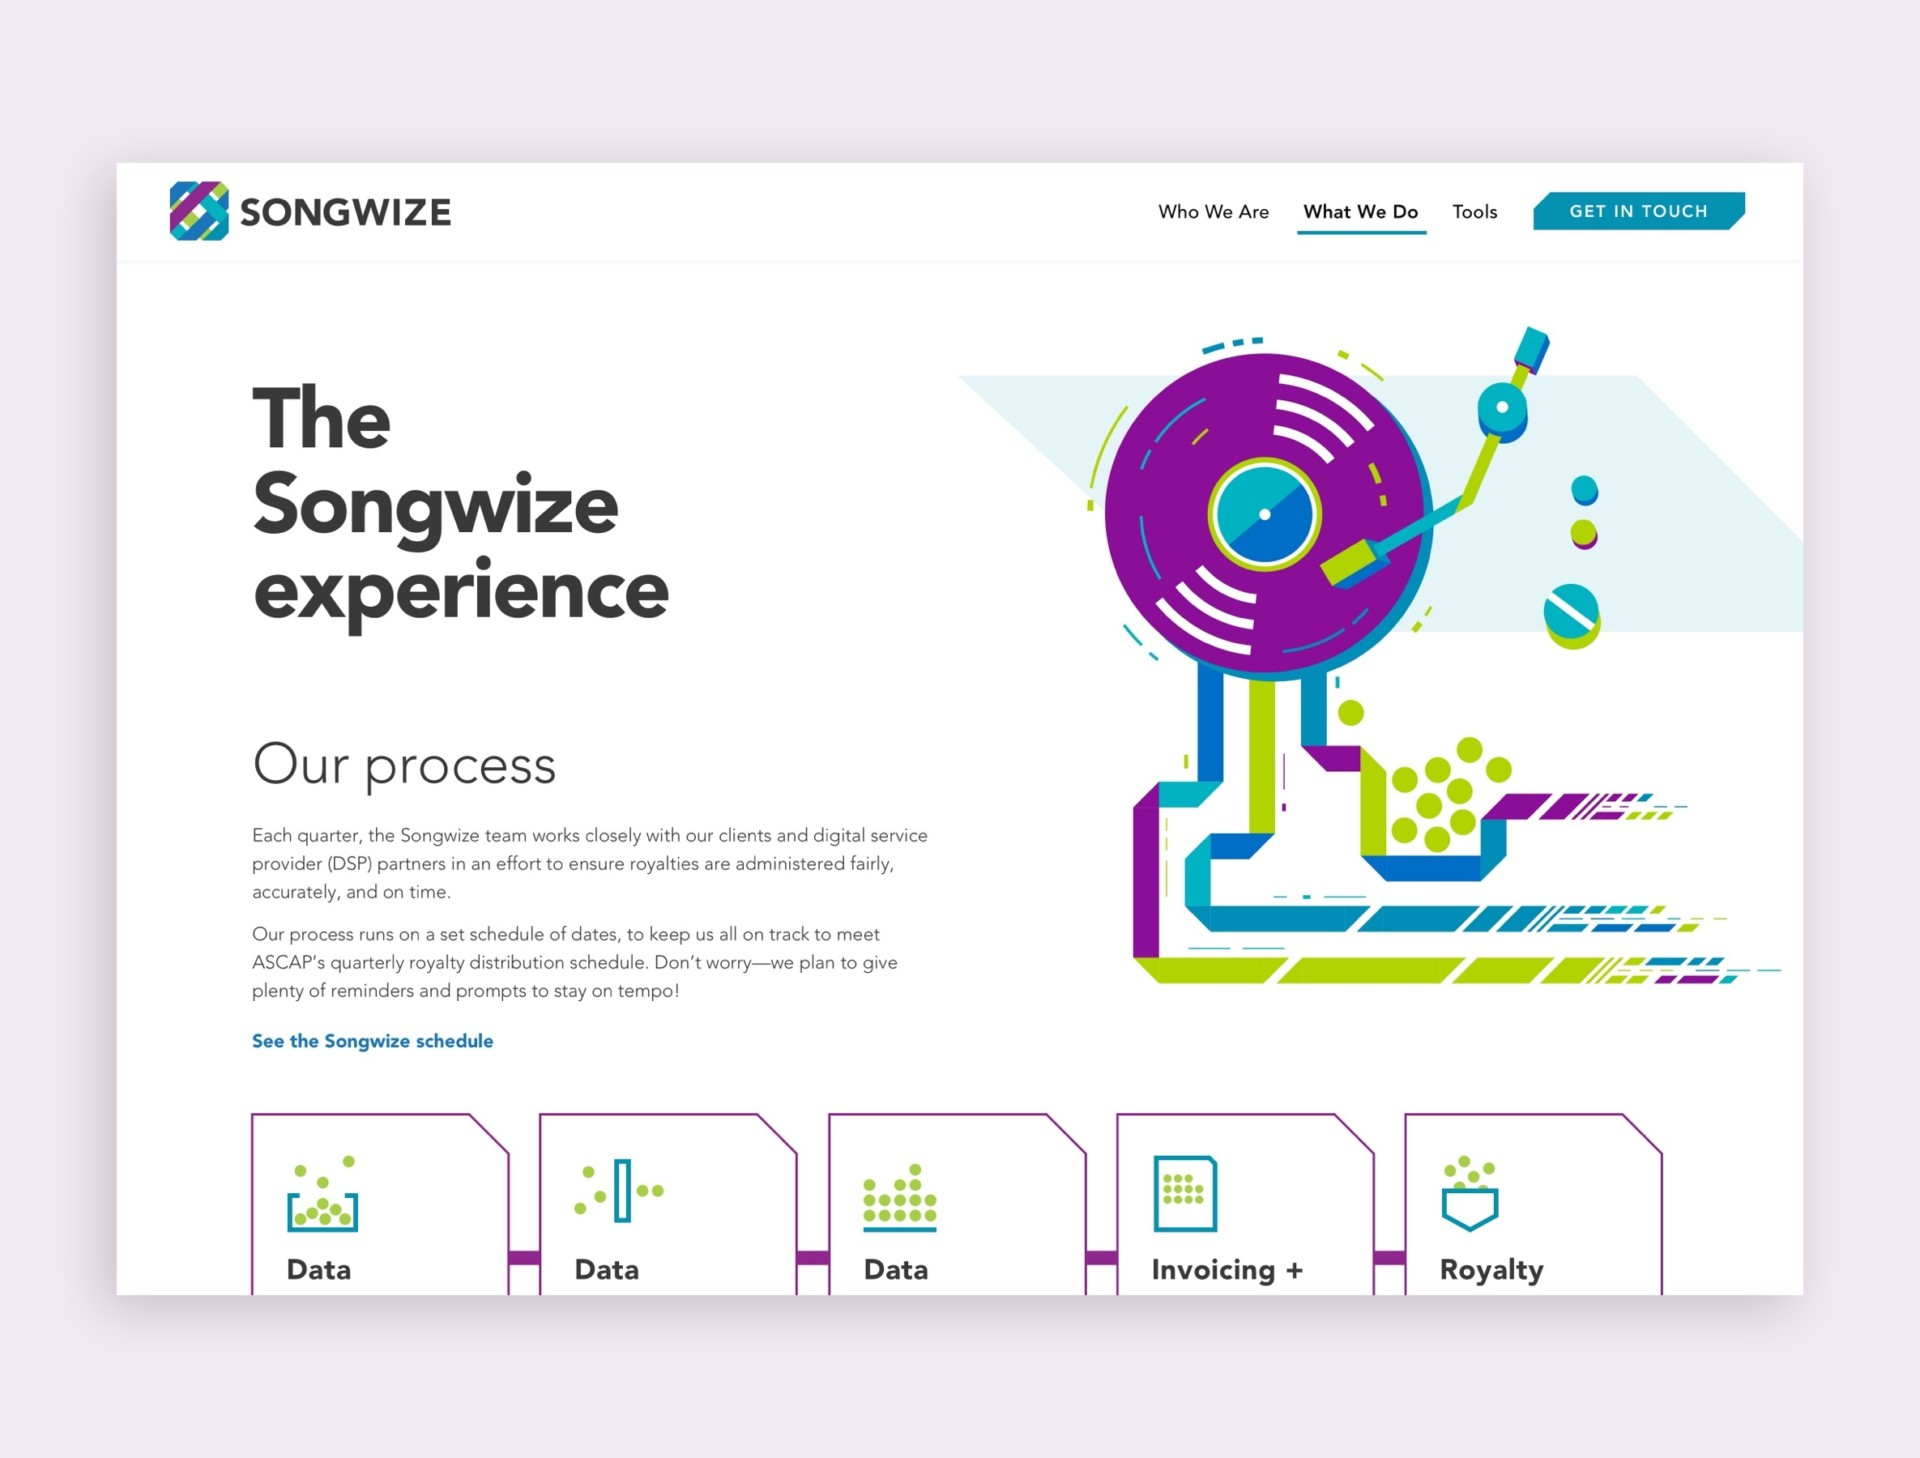 Songwize Home Screen - The Digital Experience